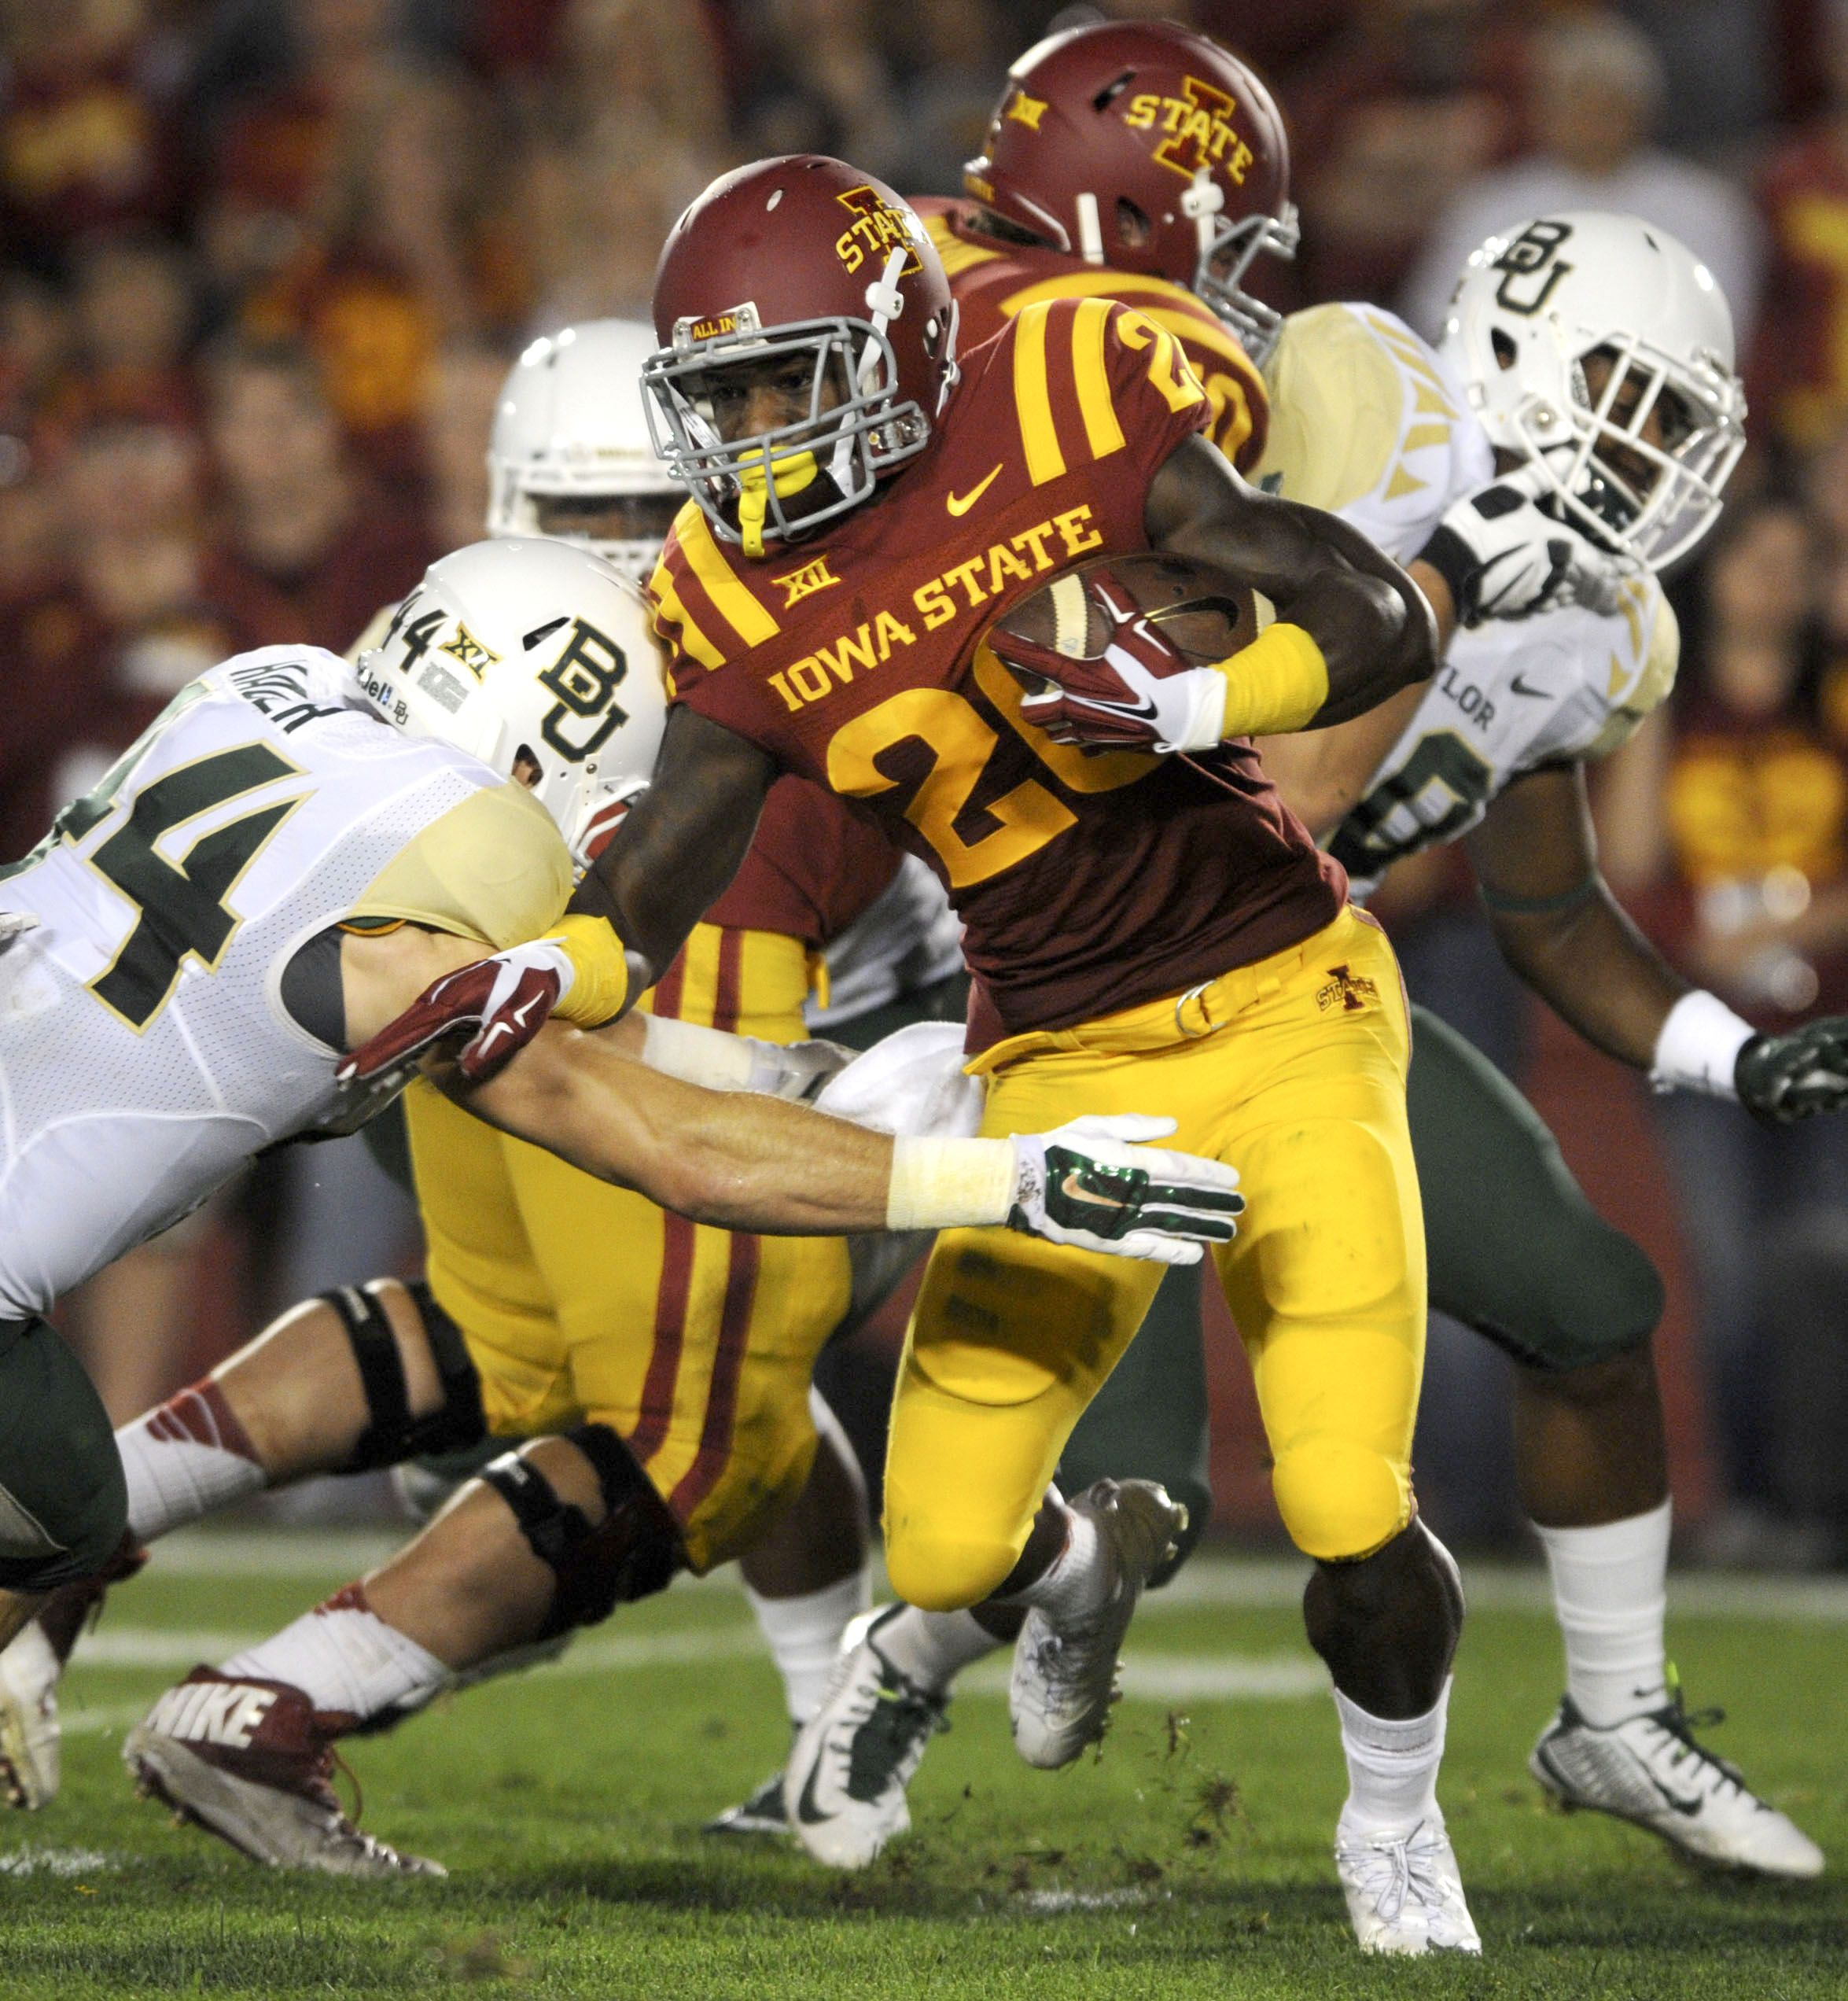 Iowa State S Running Back Devondrick Nealy And The Rest Of The